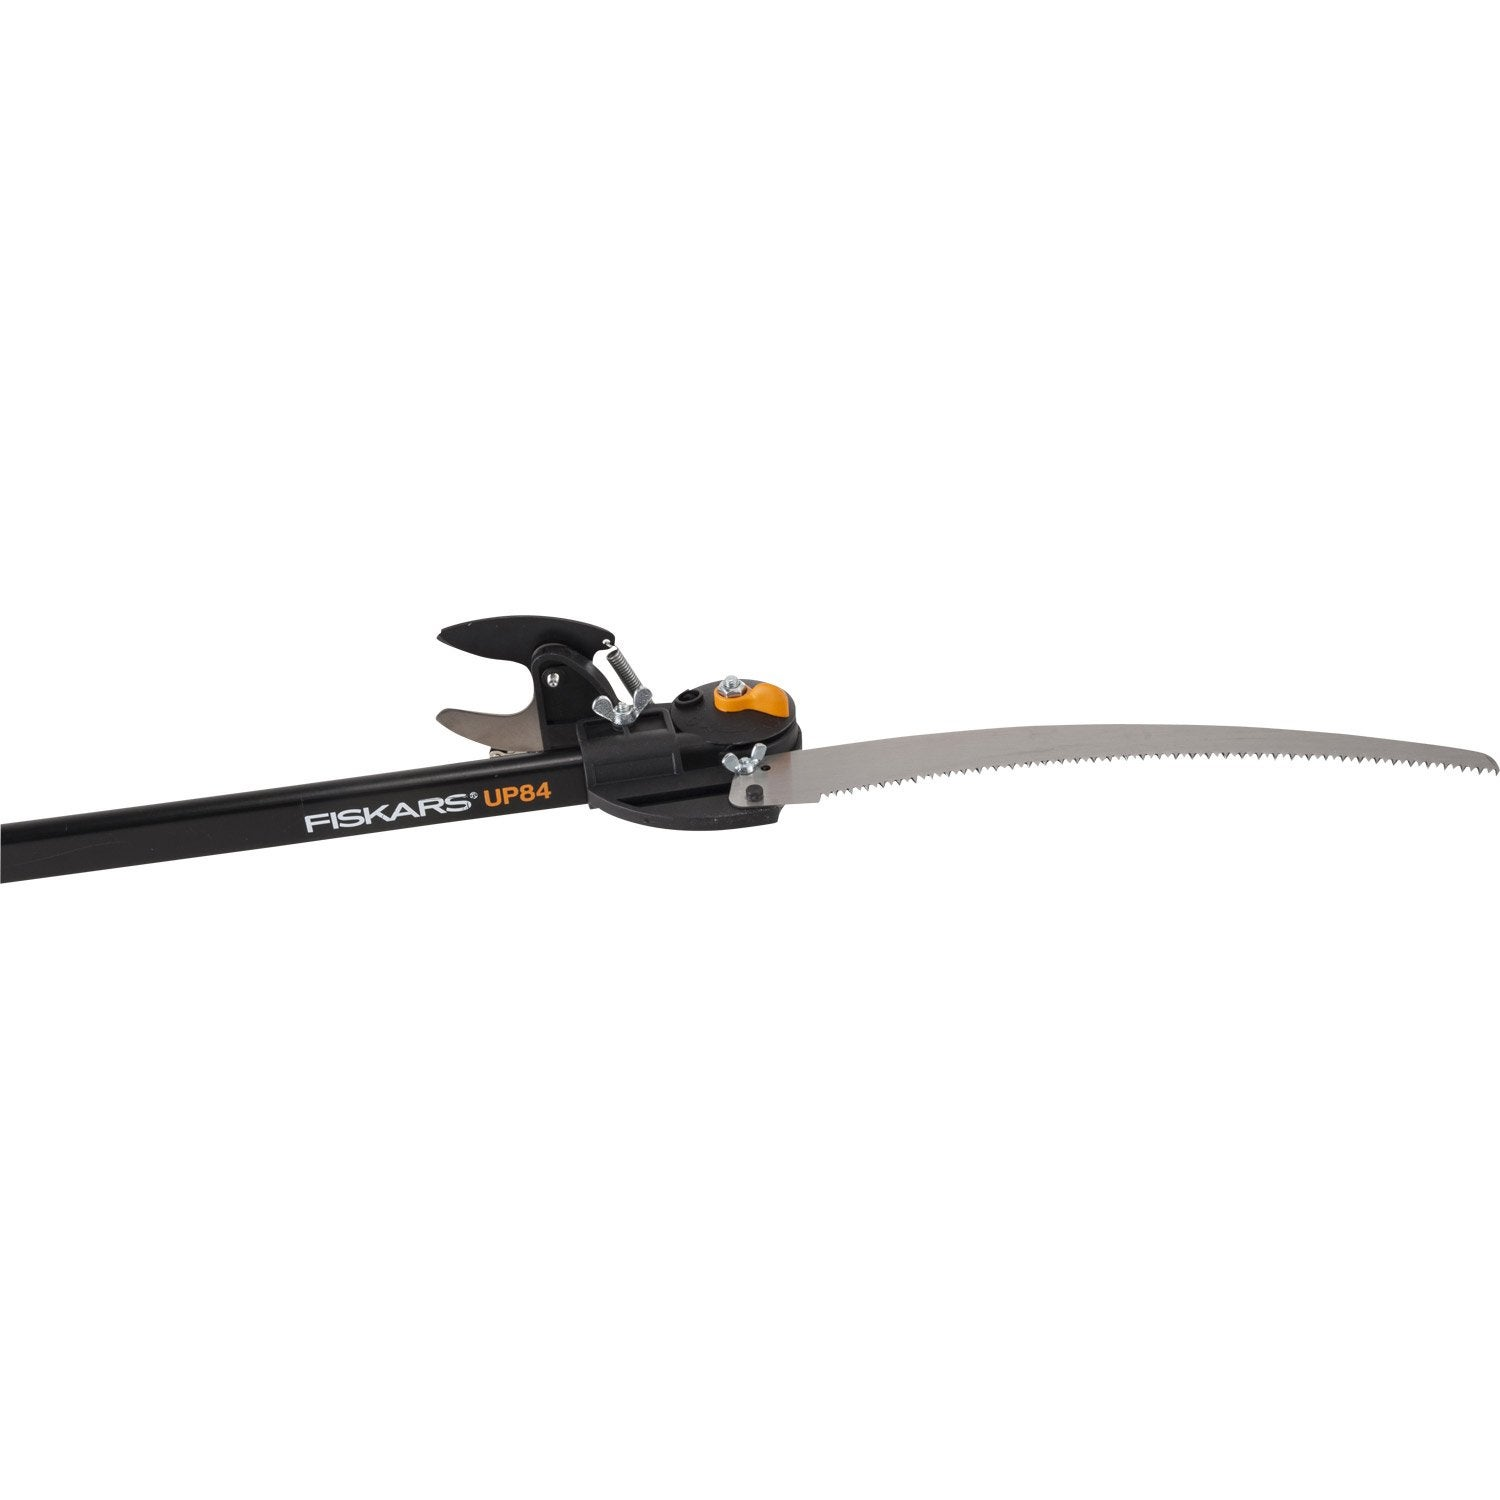 Coupe branche telescopique up86 fiskars leroy merlin - Coupe branche telescopique fiskars ...